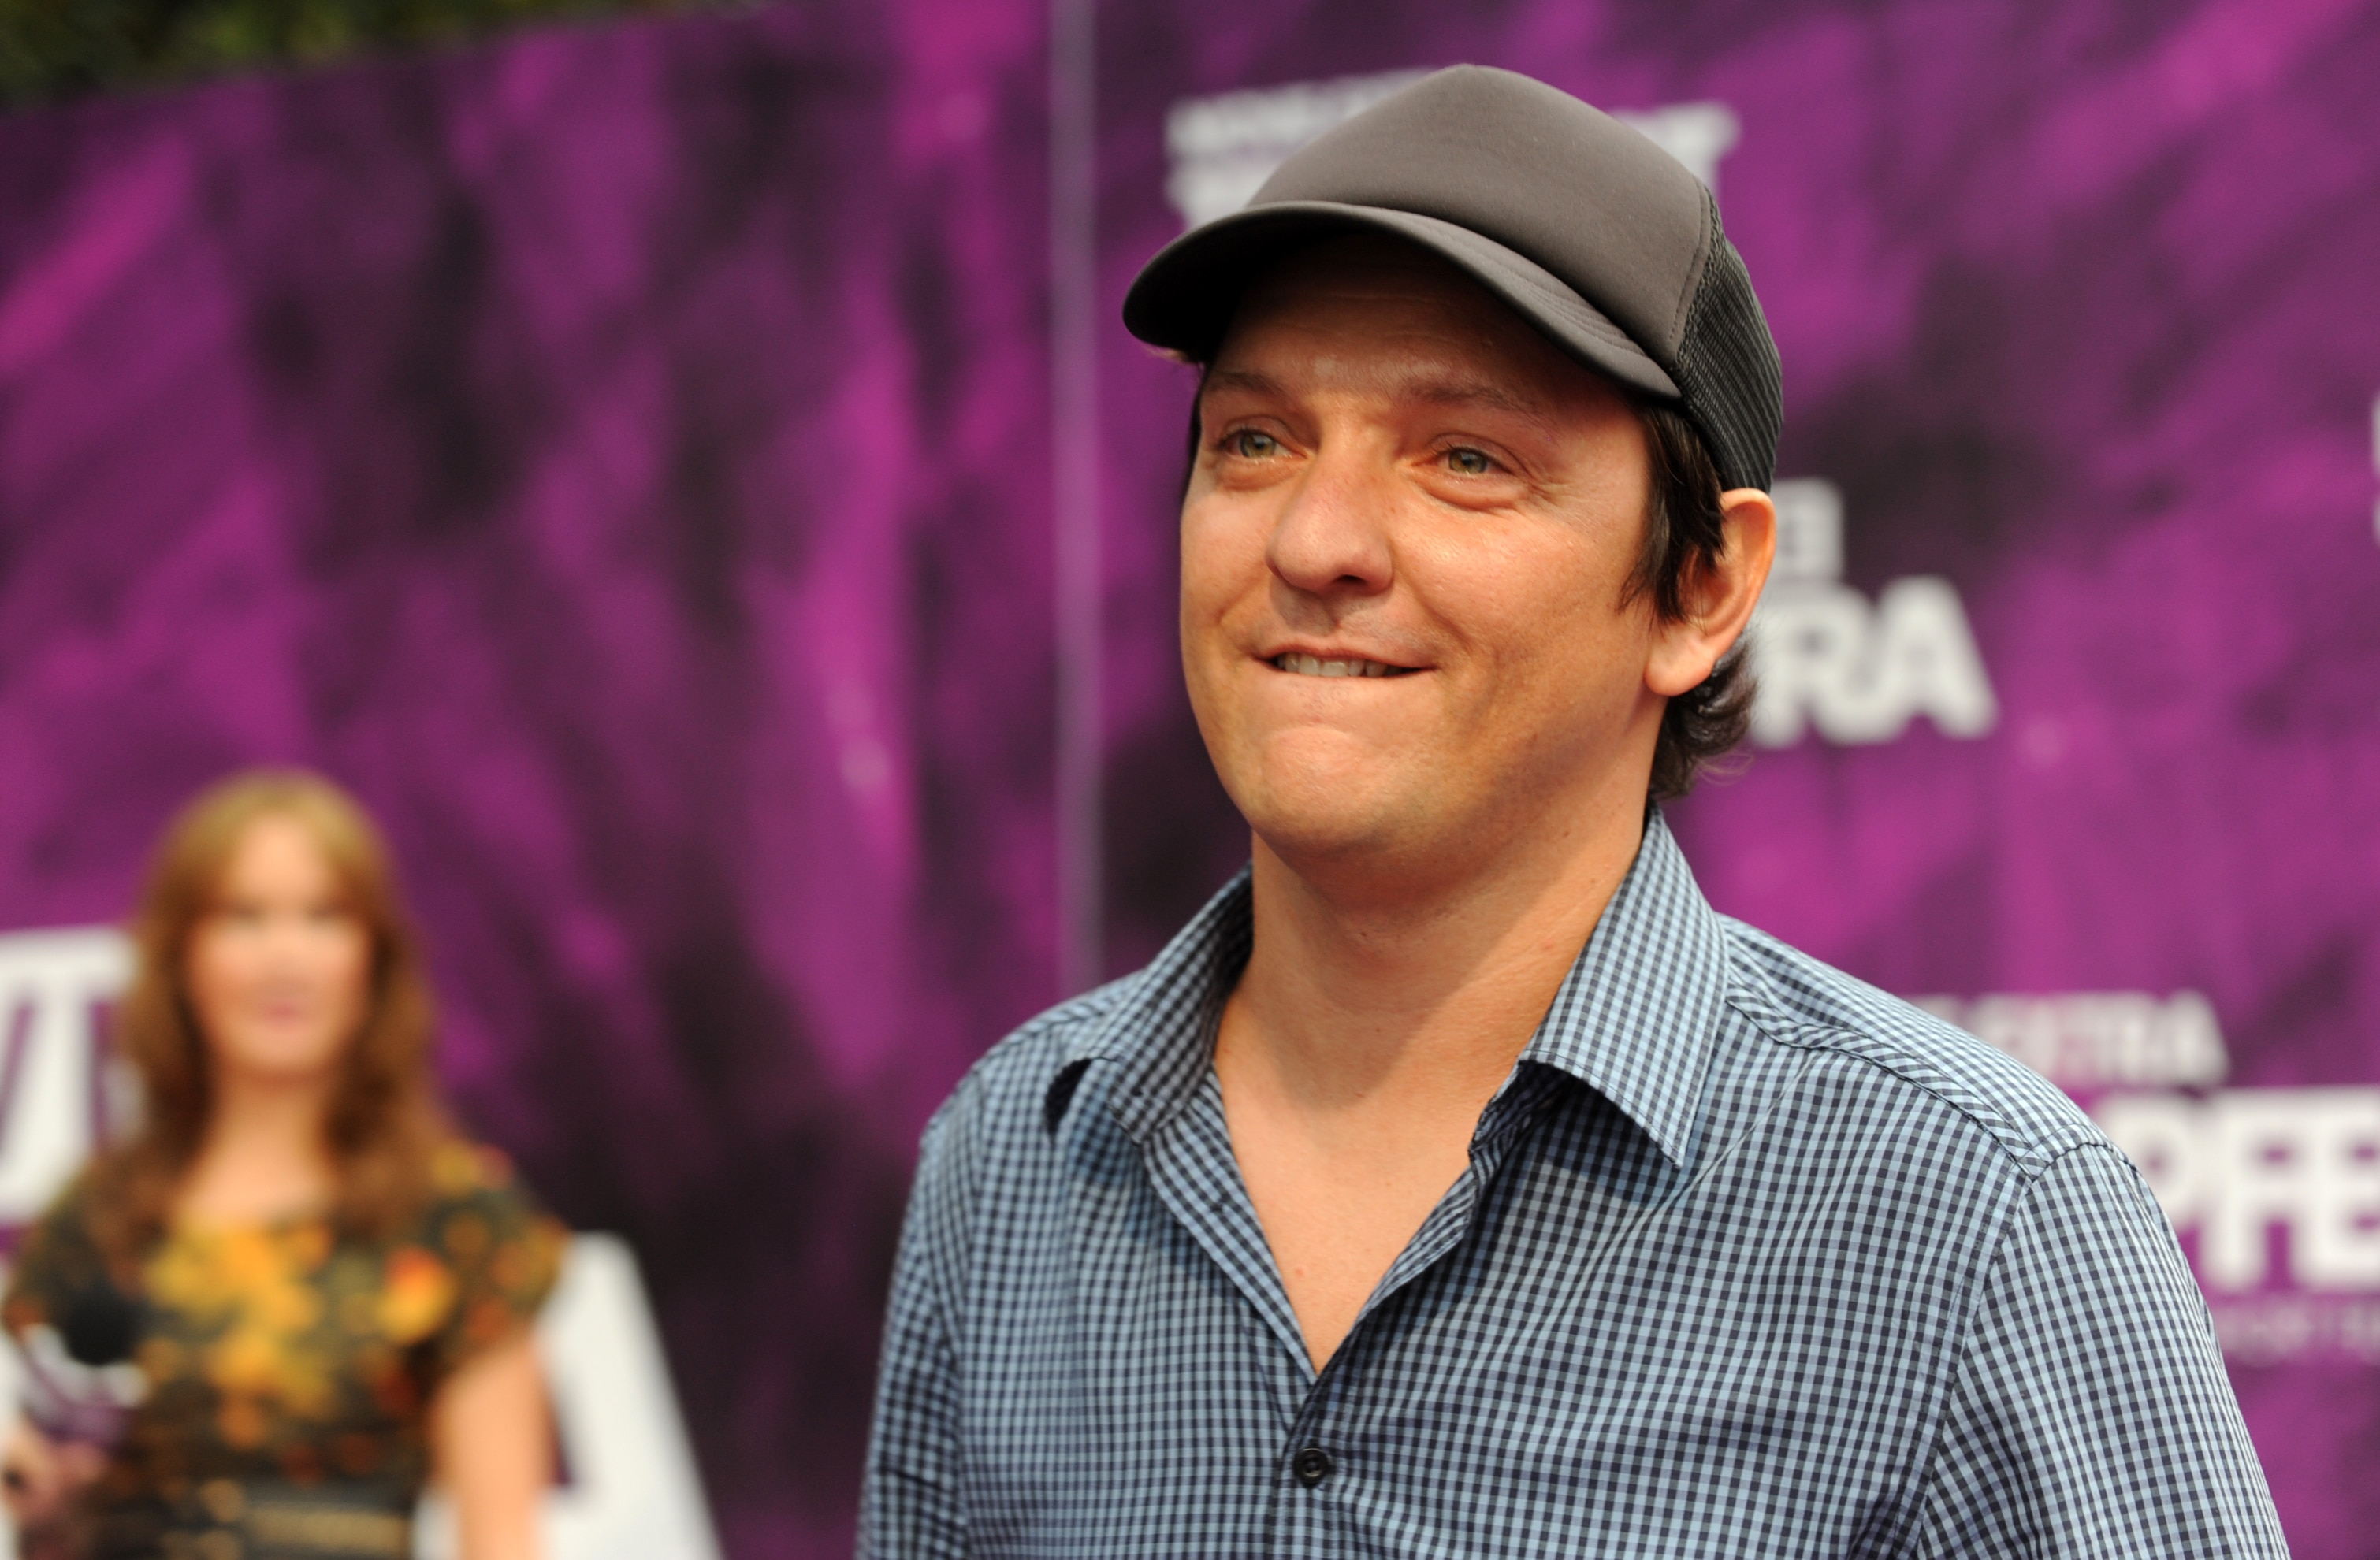 Australian comedian Chris Lilley at the Tropfest Short Flim Festival in 2011.